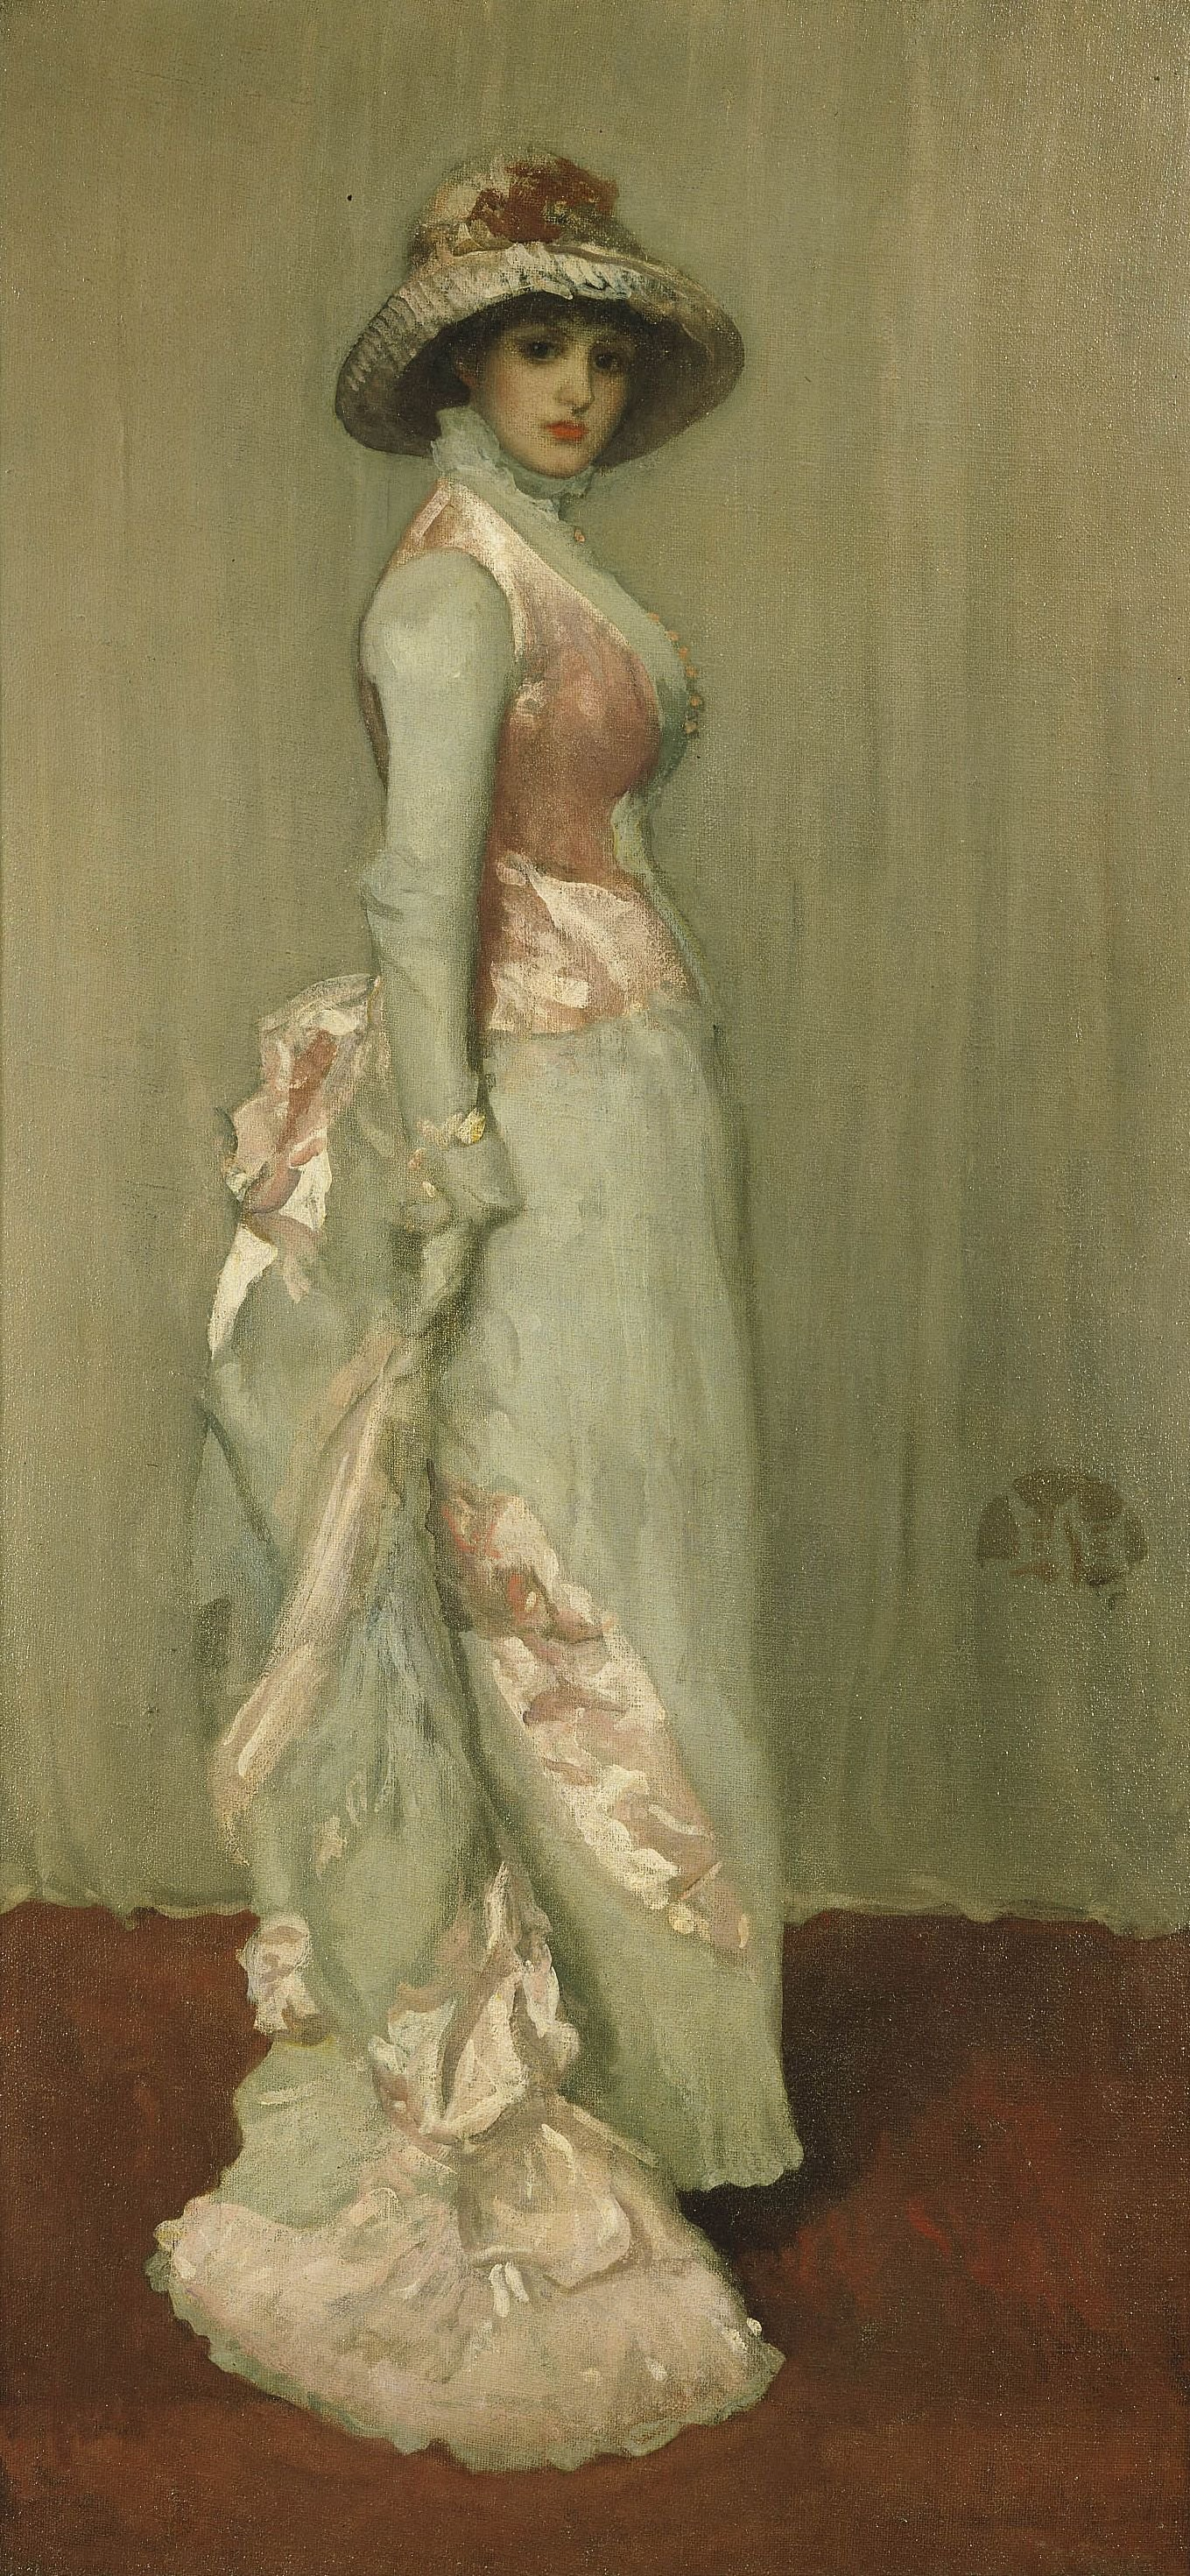 https://i2.wp.com/upload.wikimedia.org/wikipedia/commons/8/8c/James_Abbot_McNeill_Whistler_011.jpg